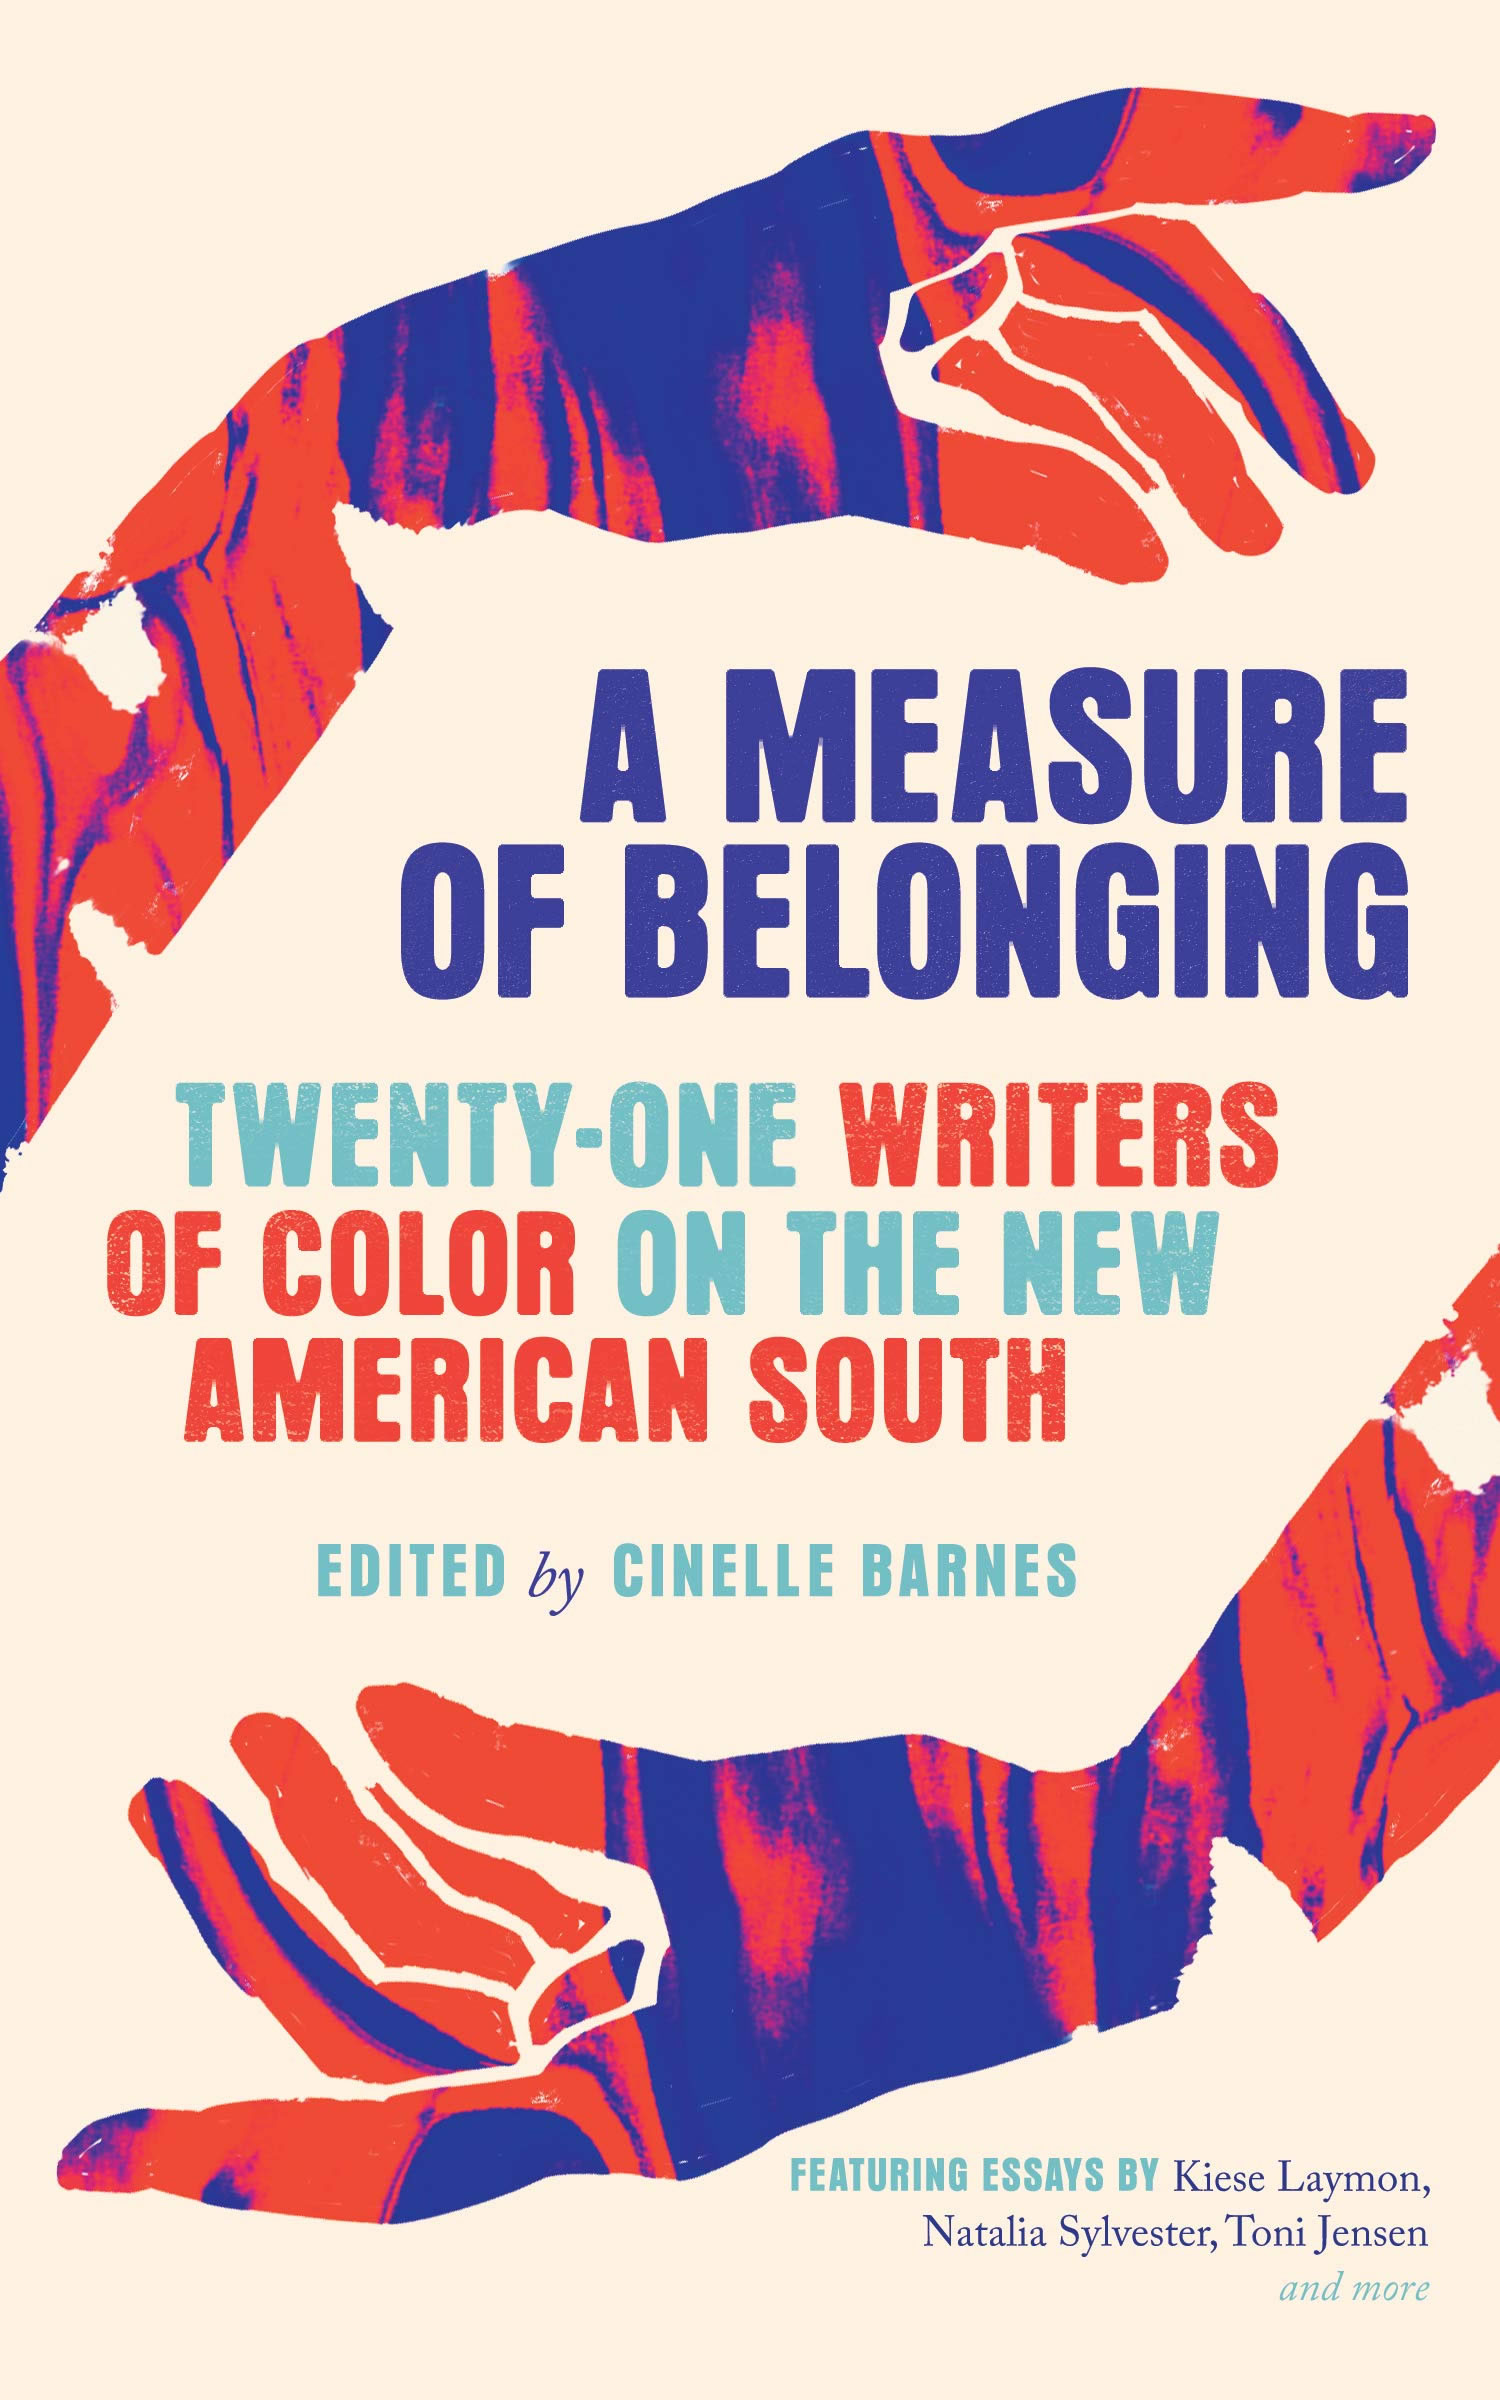 "Book cover for ""A Measure of Belonging"" featuring two hands painted in red and blue, surrounding the title. The text to the right of the image says that it is an Anthology Reading featuring Cinelle Barnes, Aruni Kashyap and Gary Jackson on October 1, 2020 7pm on Zoom - registration is required"